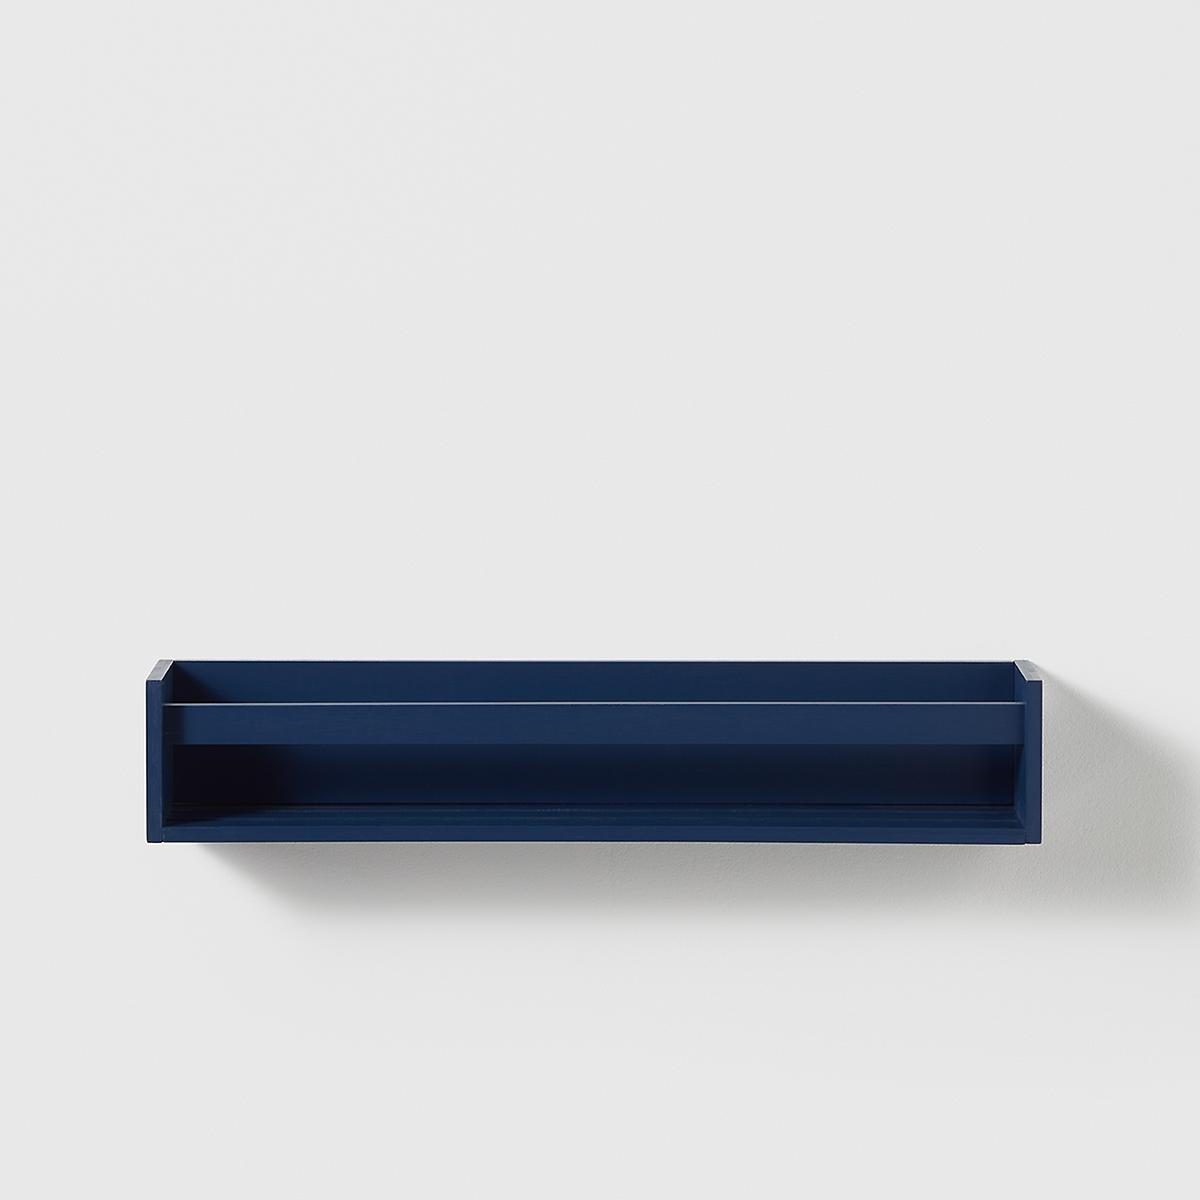 Marie Kondo Indigo Blue Kid's Wall-Mounted Bookshelf